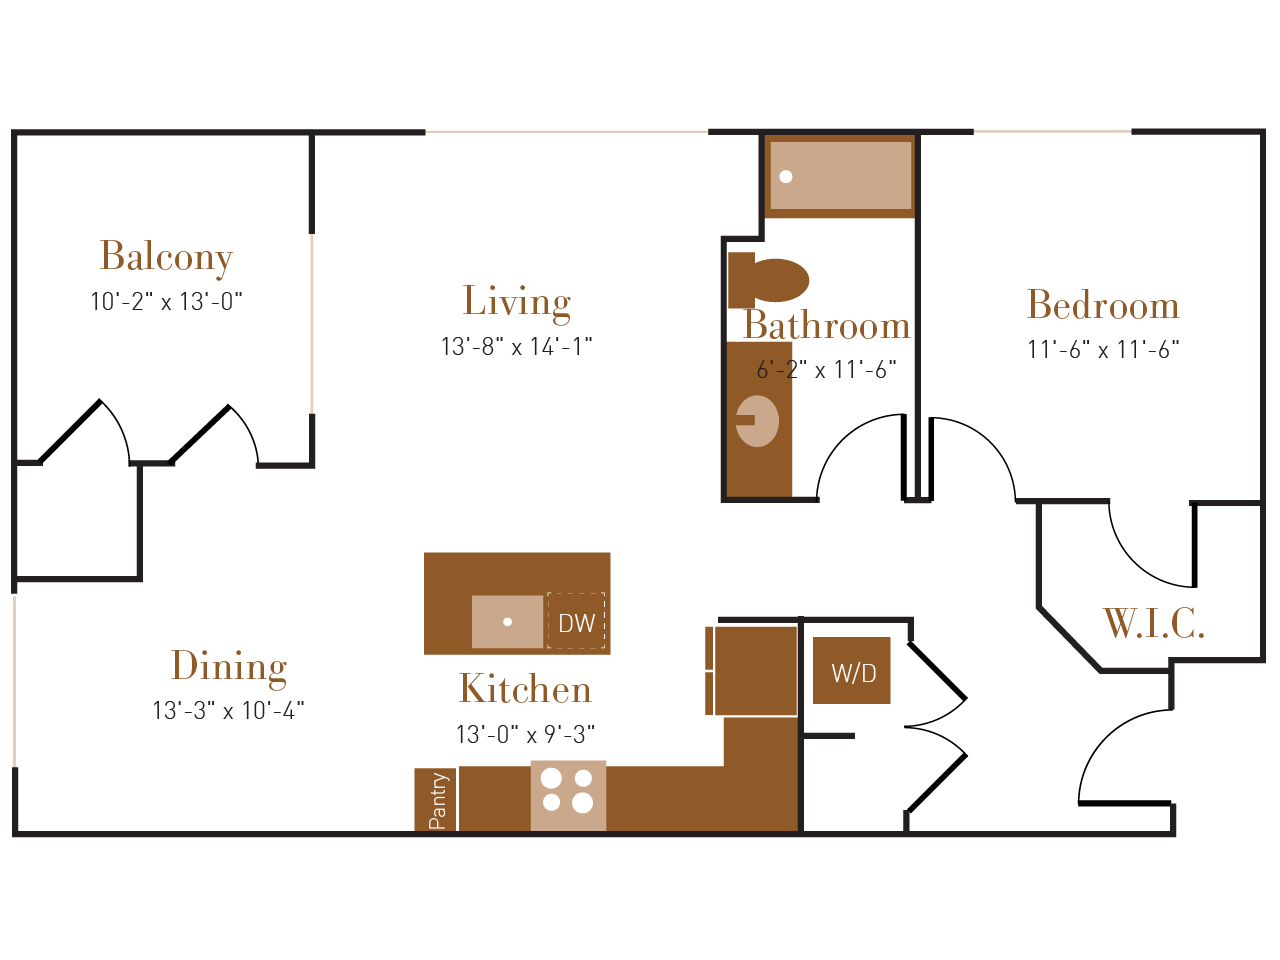 A Three A floor plan diagram. One bedroom, one bathroom, an open kitchen dining and living area, a balcony, and a washer dryer.